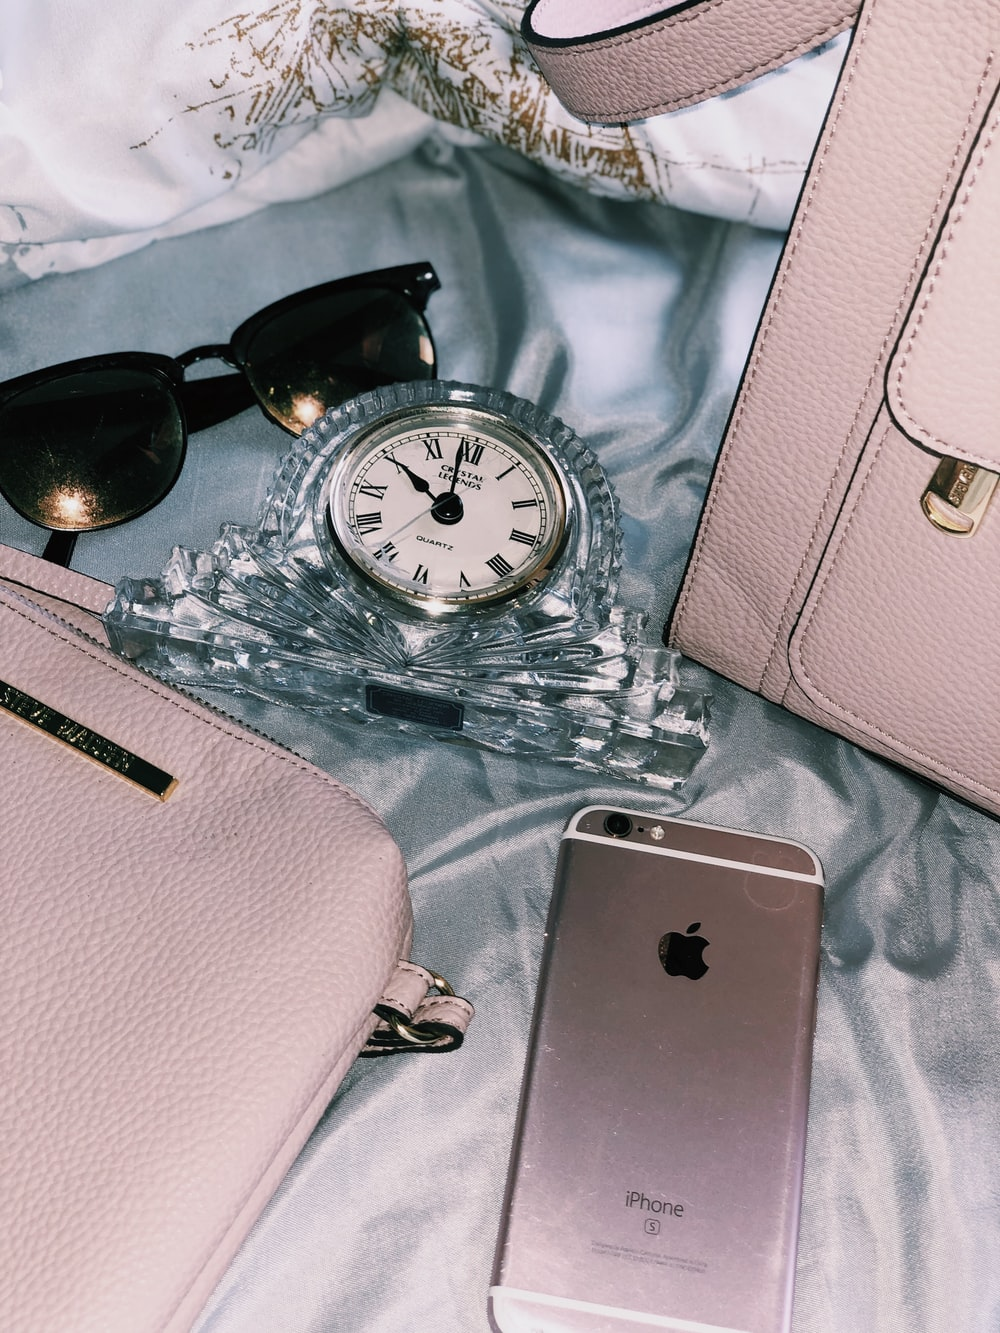 gold iPhone 6s near black framed sunglasses, pink leather bag, and clear analog clock